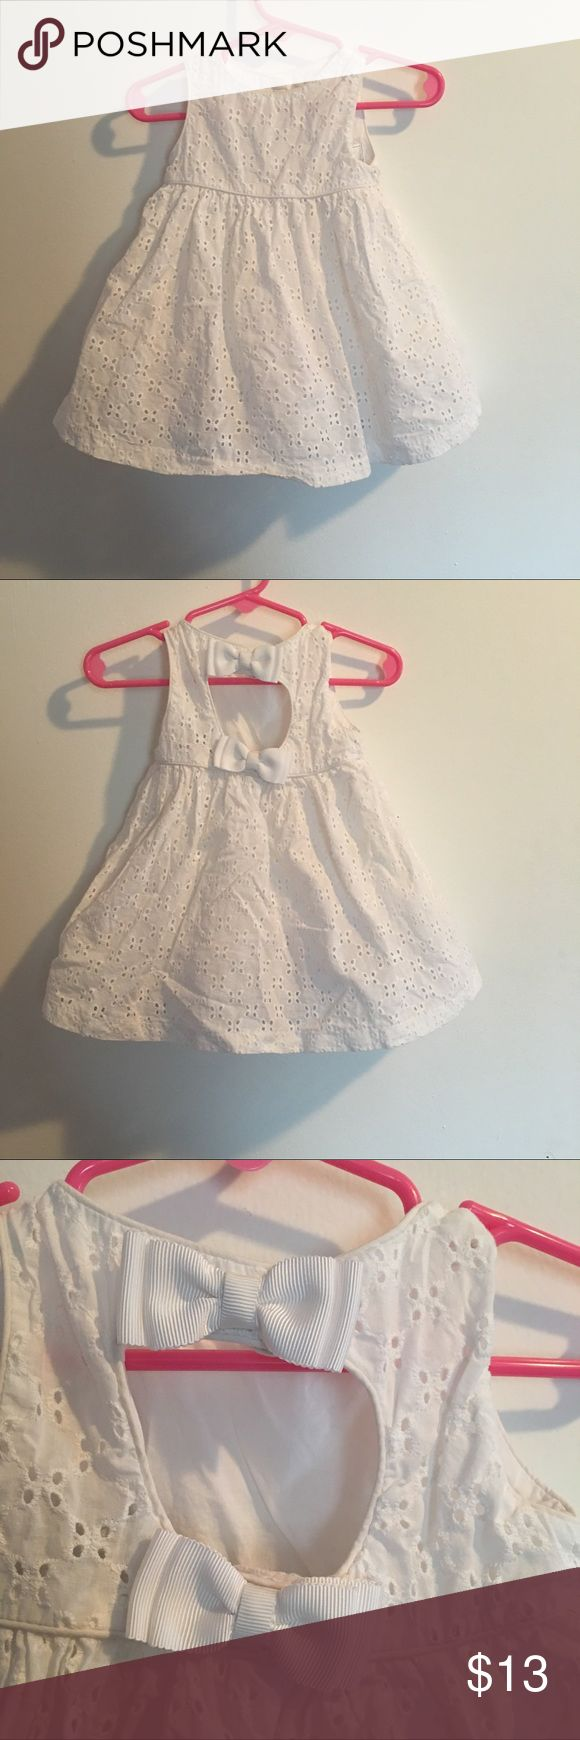 {Gymboree} White Summer Dress Adorable white summer dress with tuelle underneath. Keyhole in the back with two bows. Used once for a wedding. Tag says 6-12 months but fits 9 months best. Gymboree Dresses Formal